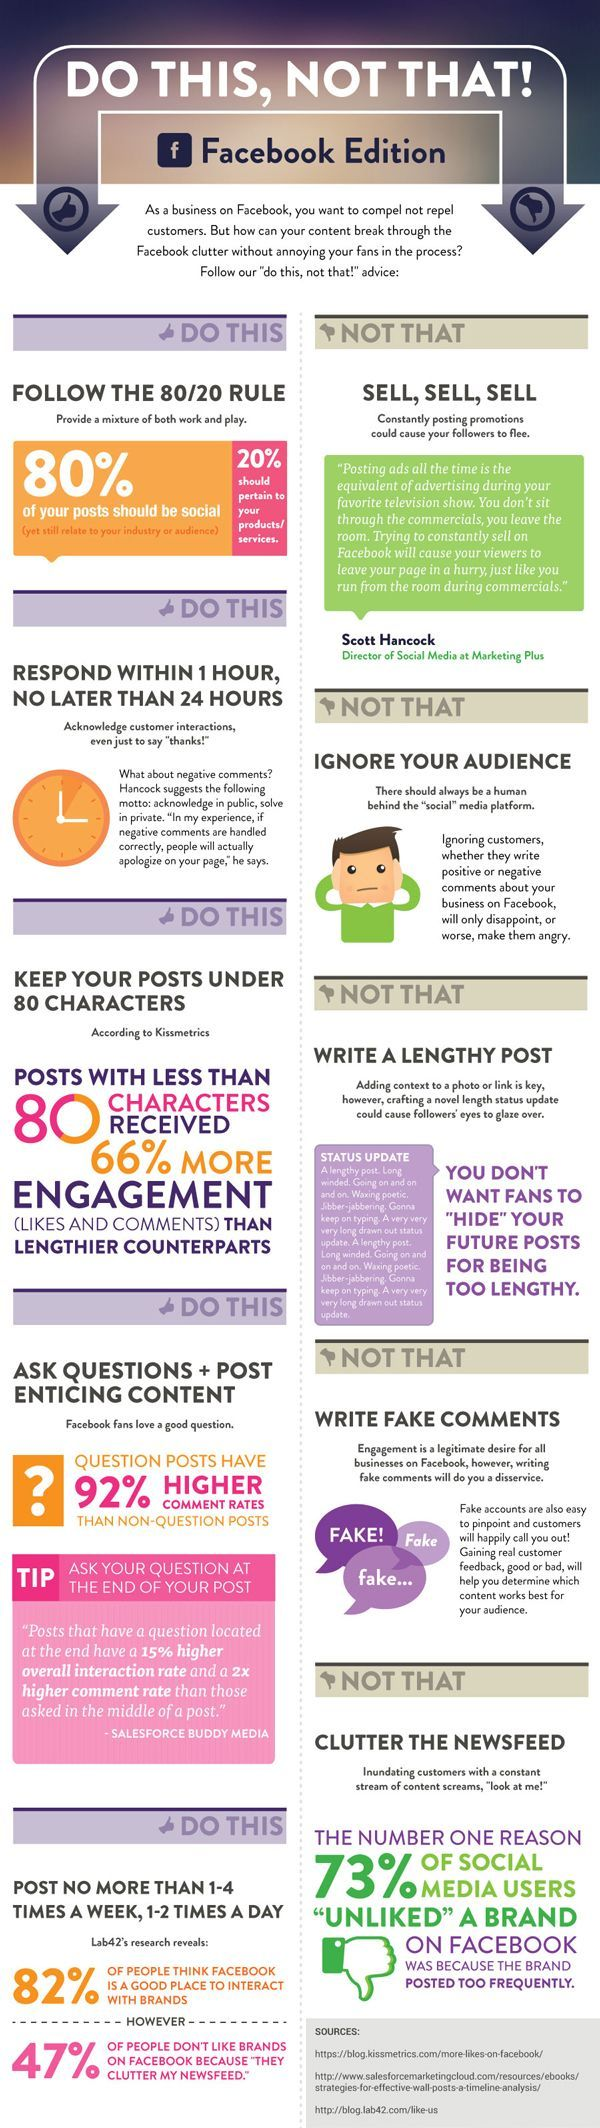 There are a lot of things you should be doing on Facebook that you may not be. Make sure you're doing things right!